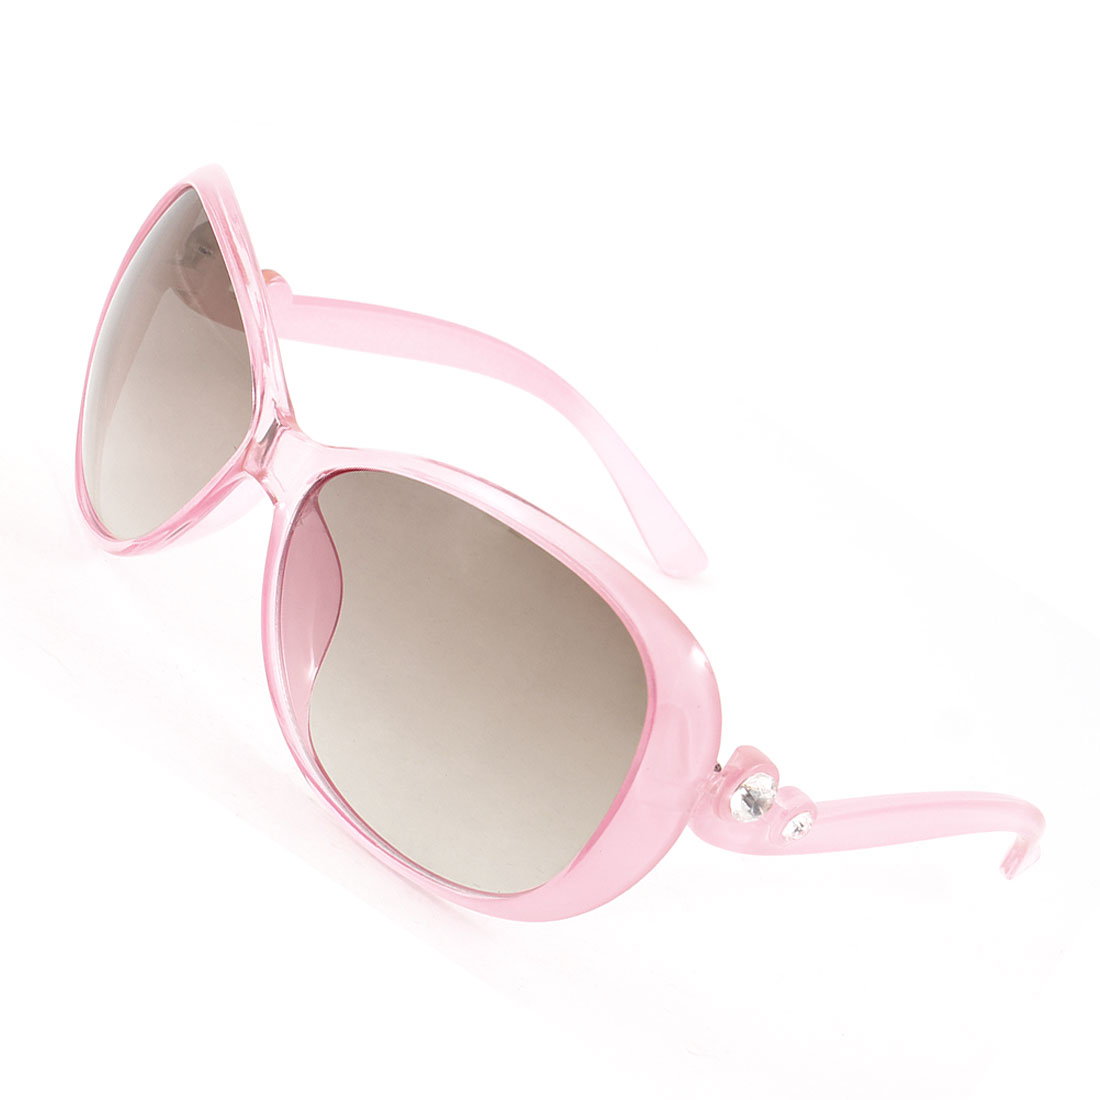 Lady Faux Crystal Decor Arms Brown Lens Pink Full Frame Sunglasses Eyeglasses